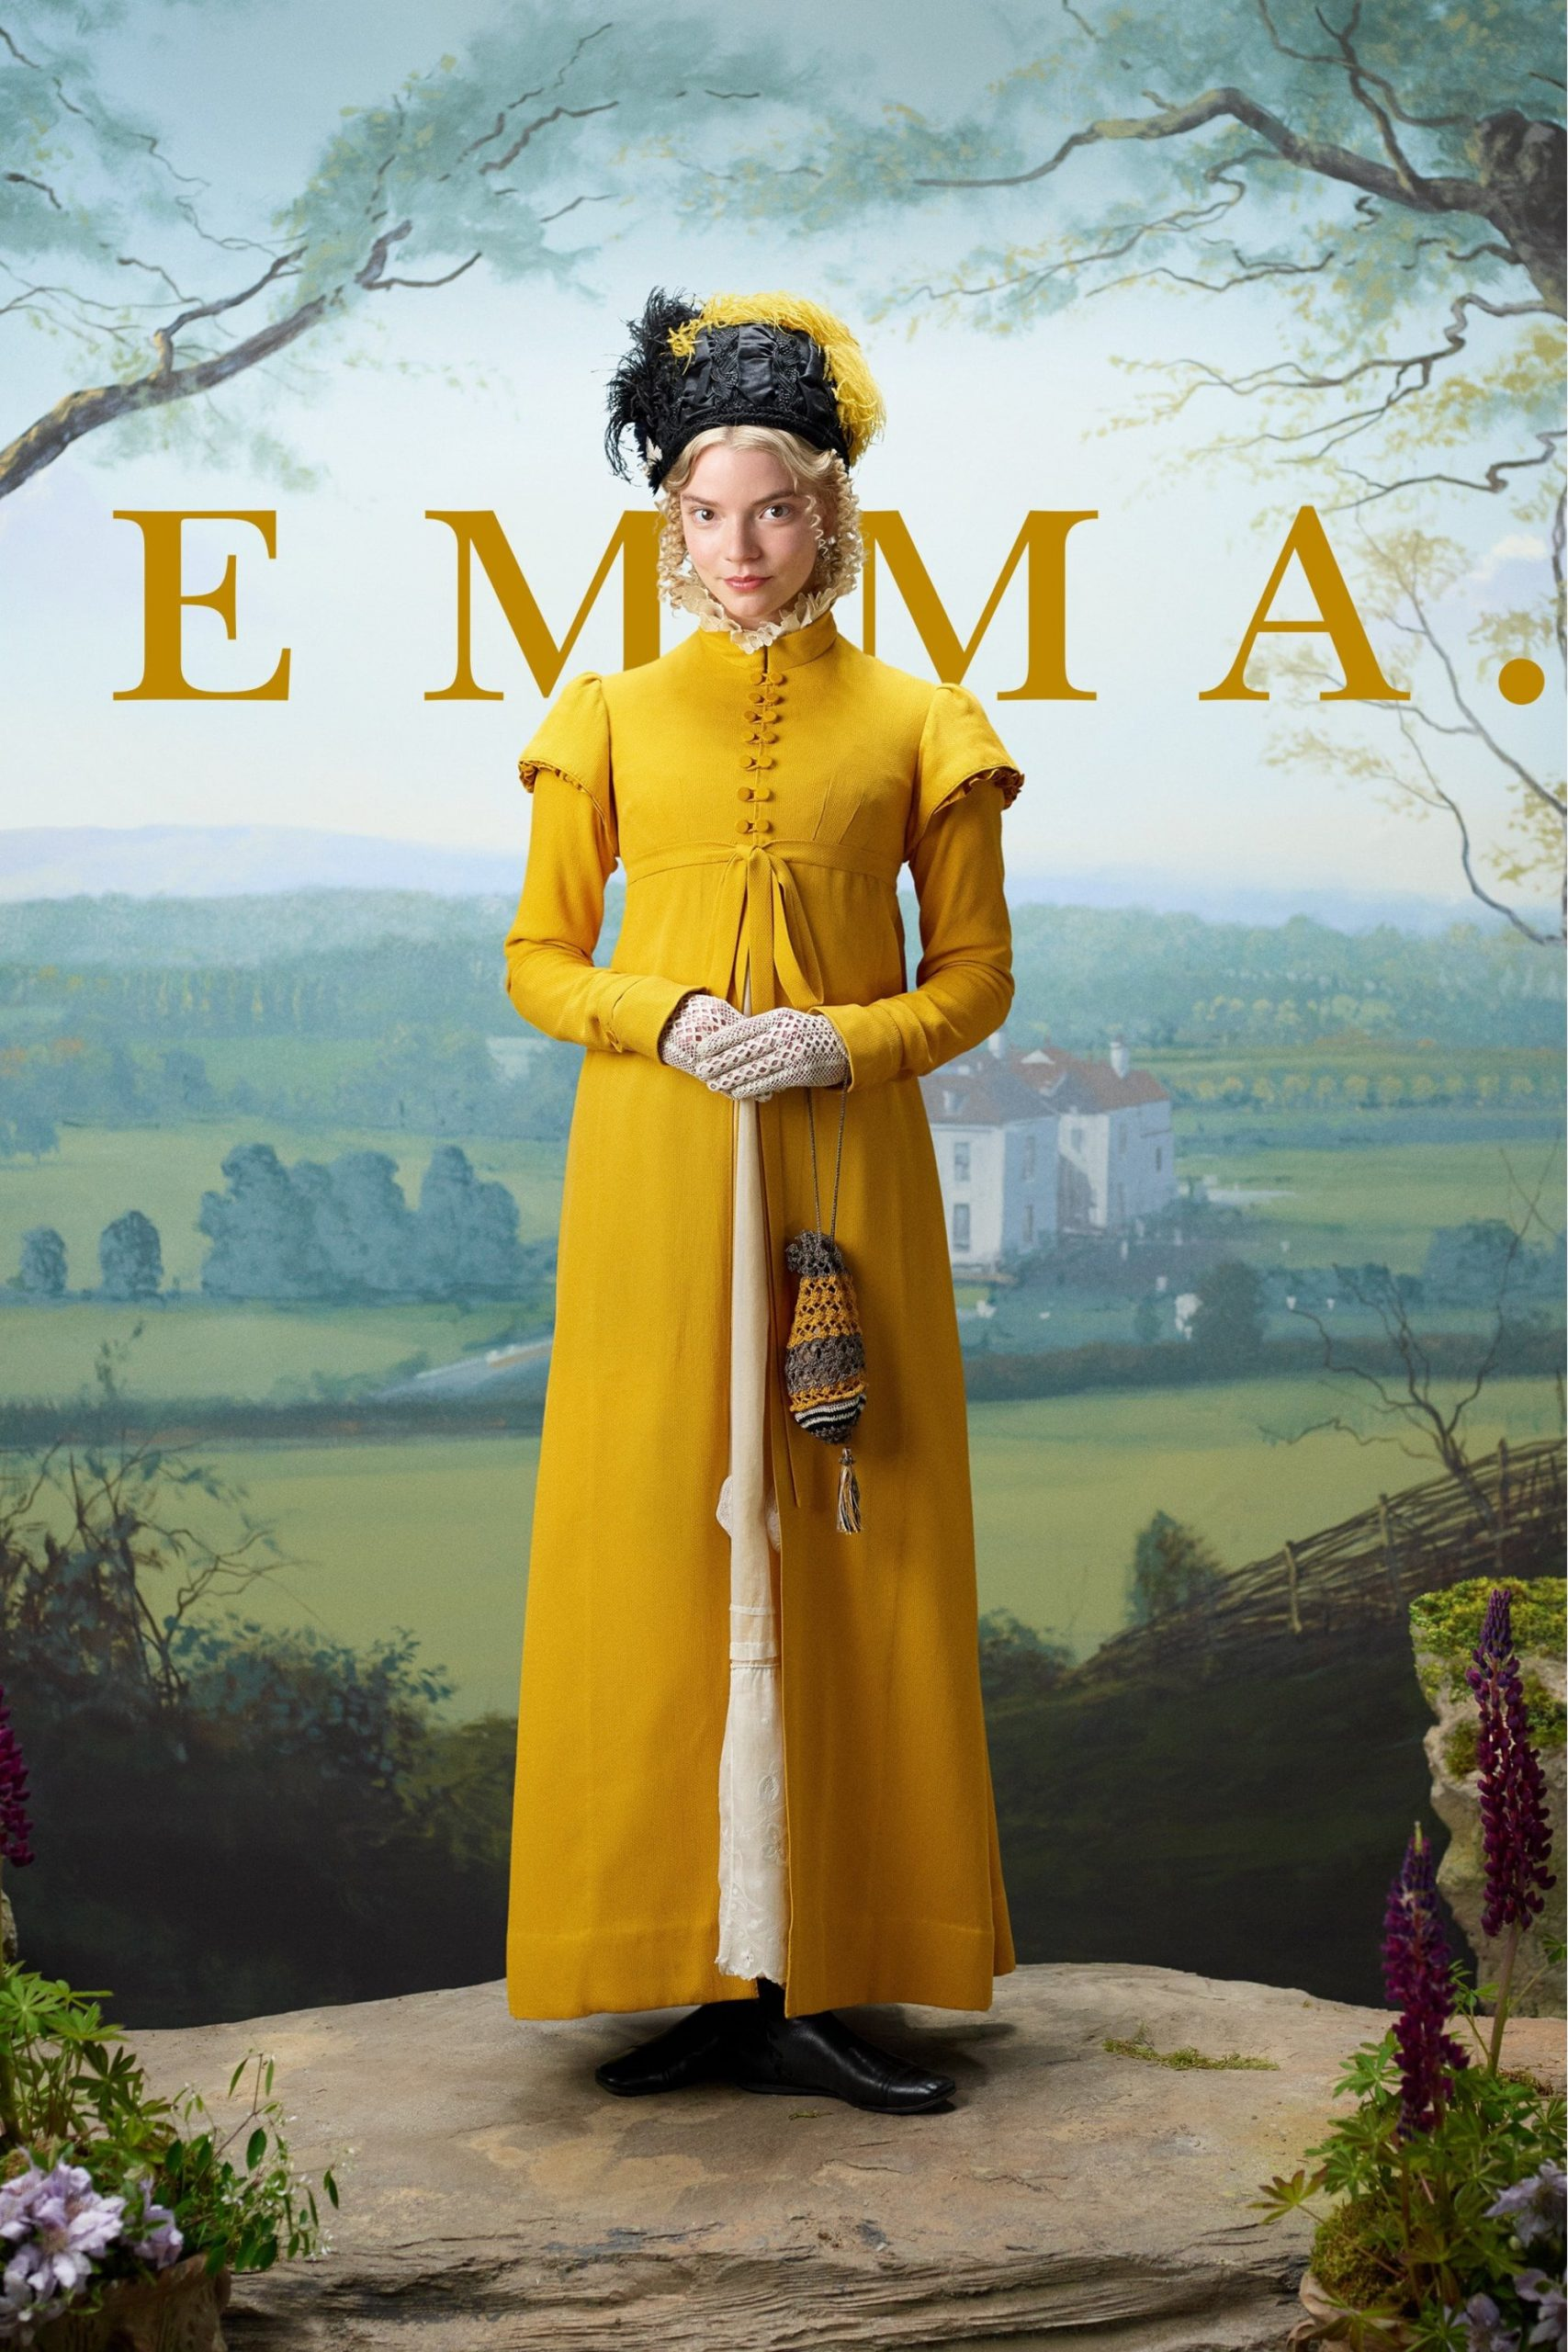 Emma. - Movie Poster